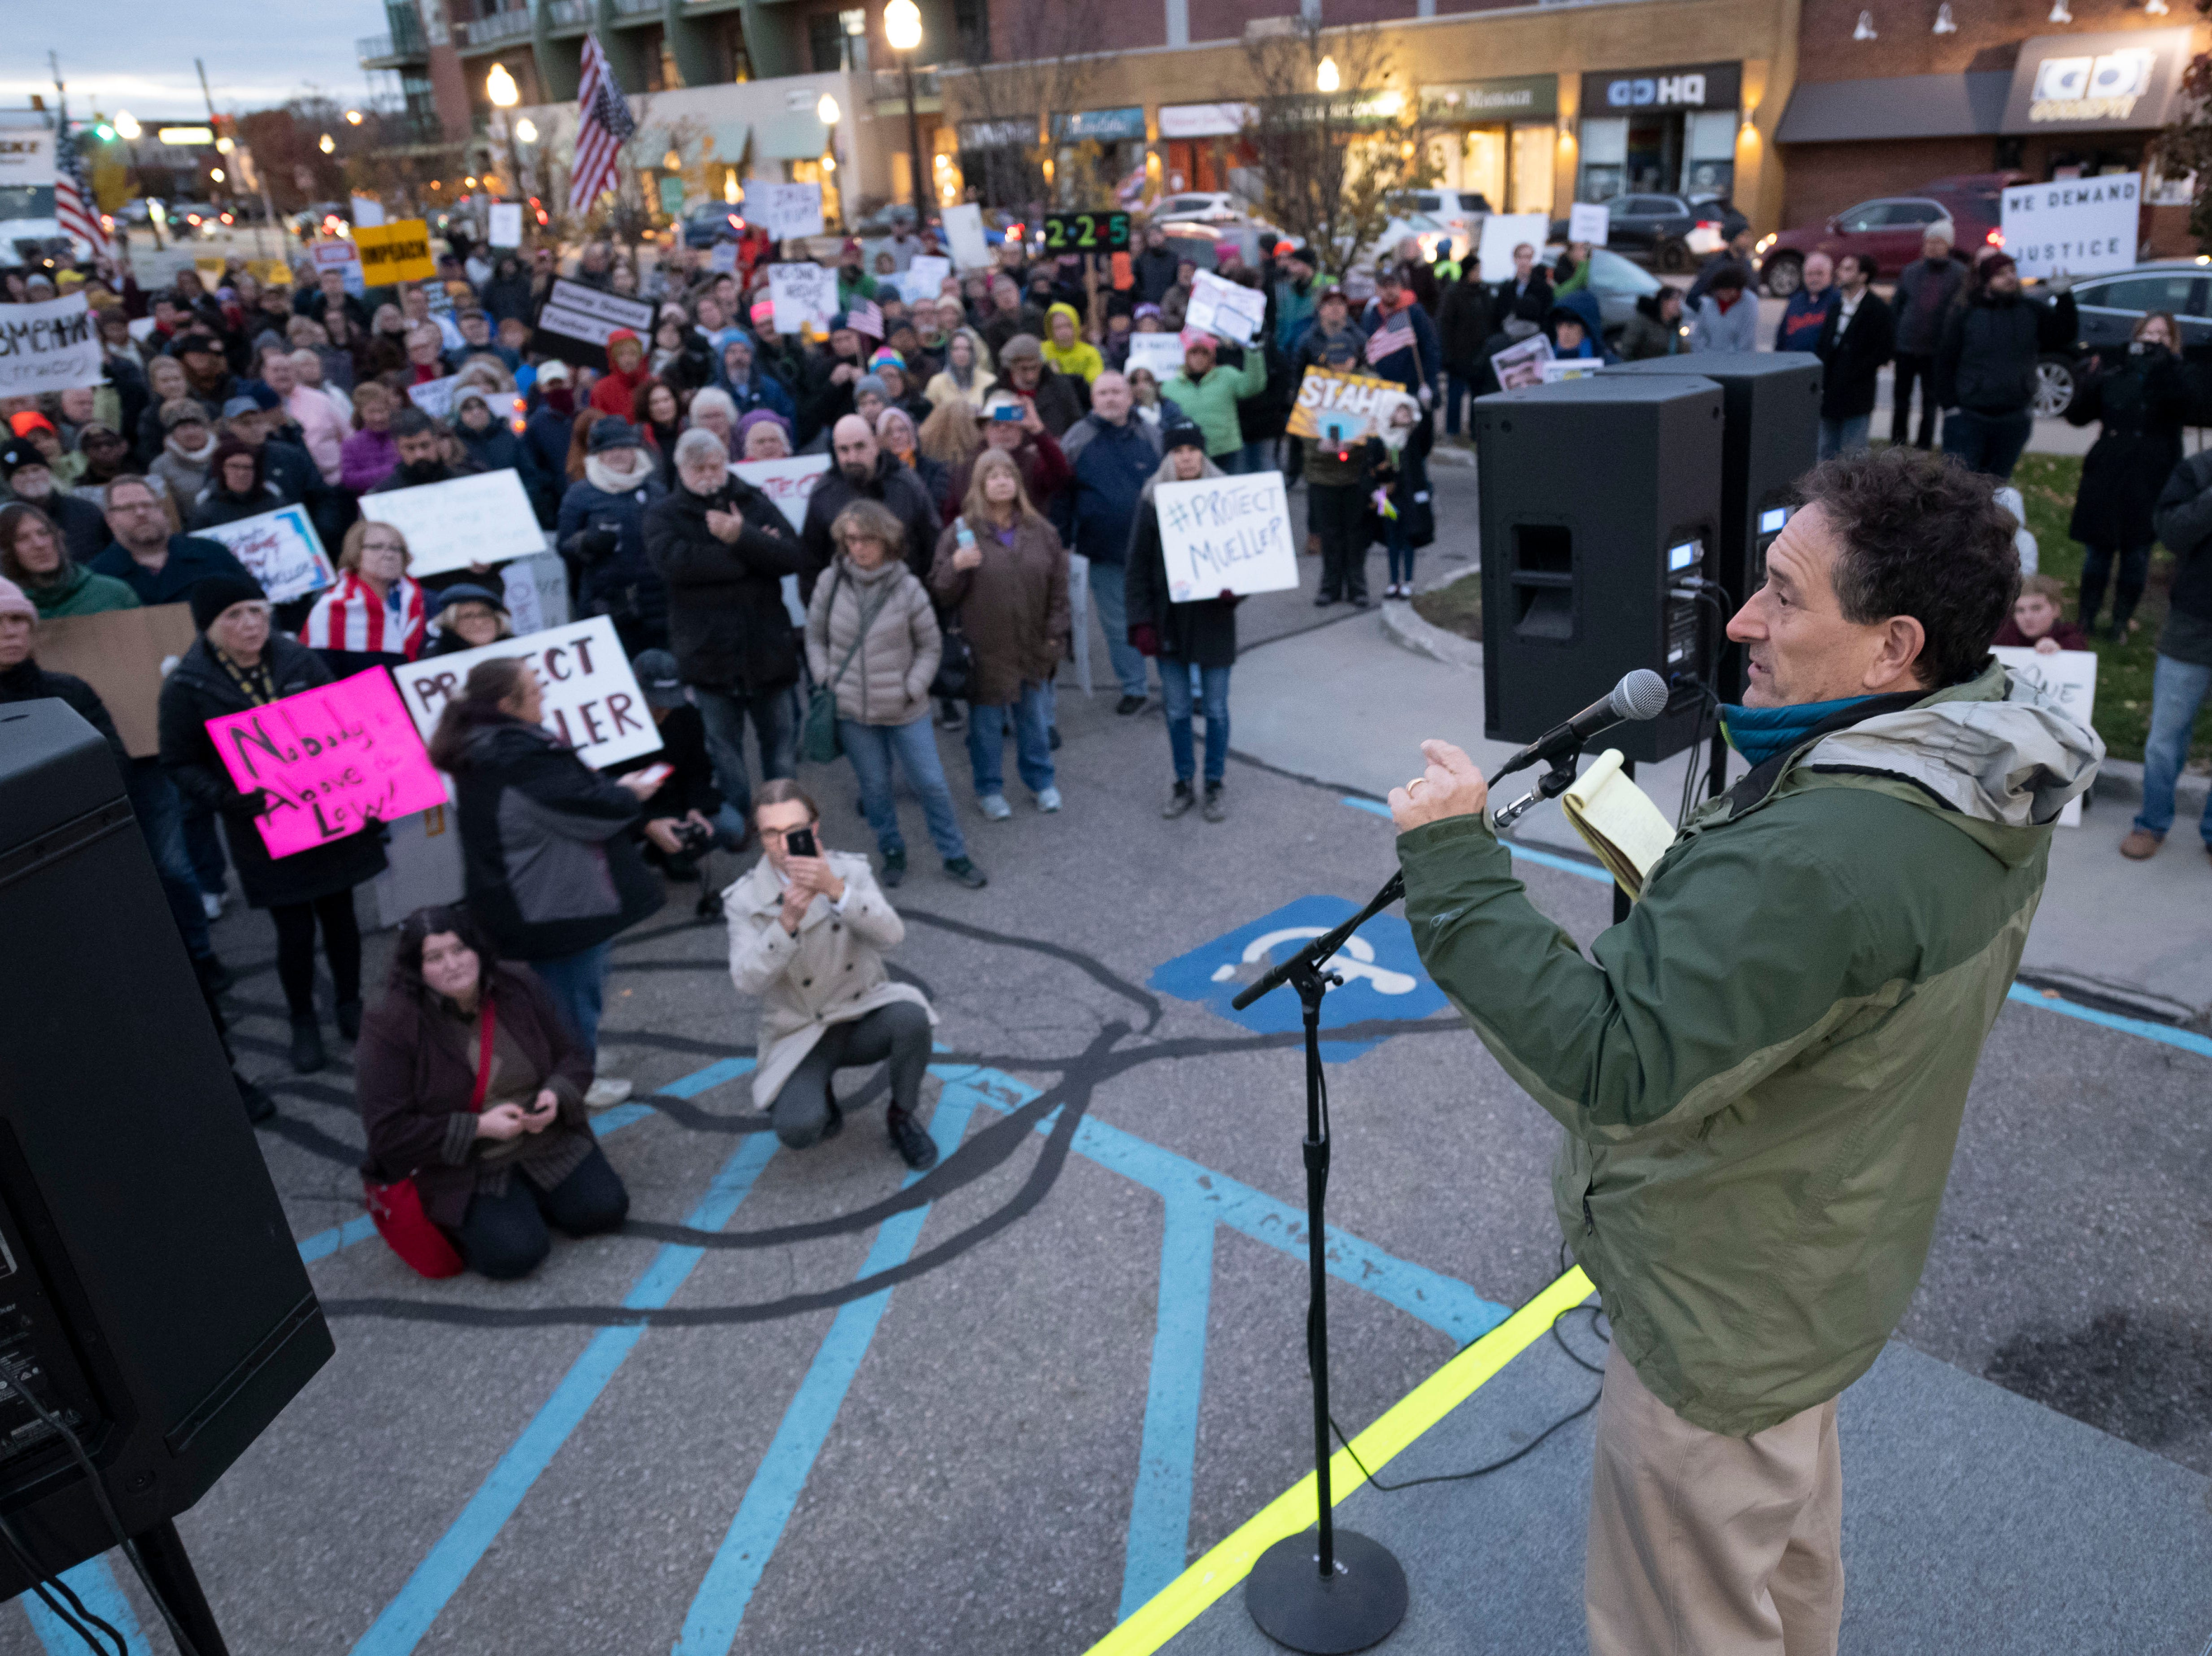 Congressman-elect Andy Levin speaks during a protest at Ferndale City Hall to demand that Special Counsel Robert Mueller's investigation be protected.